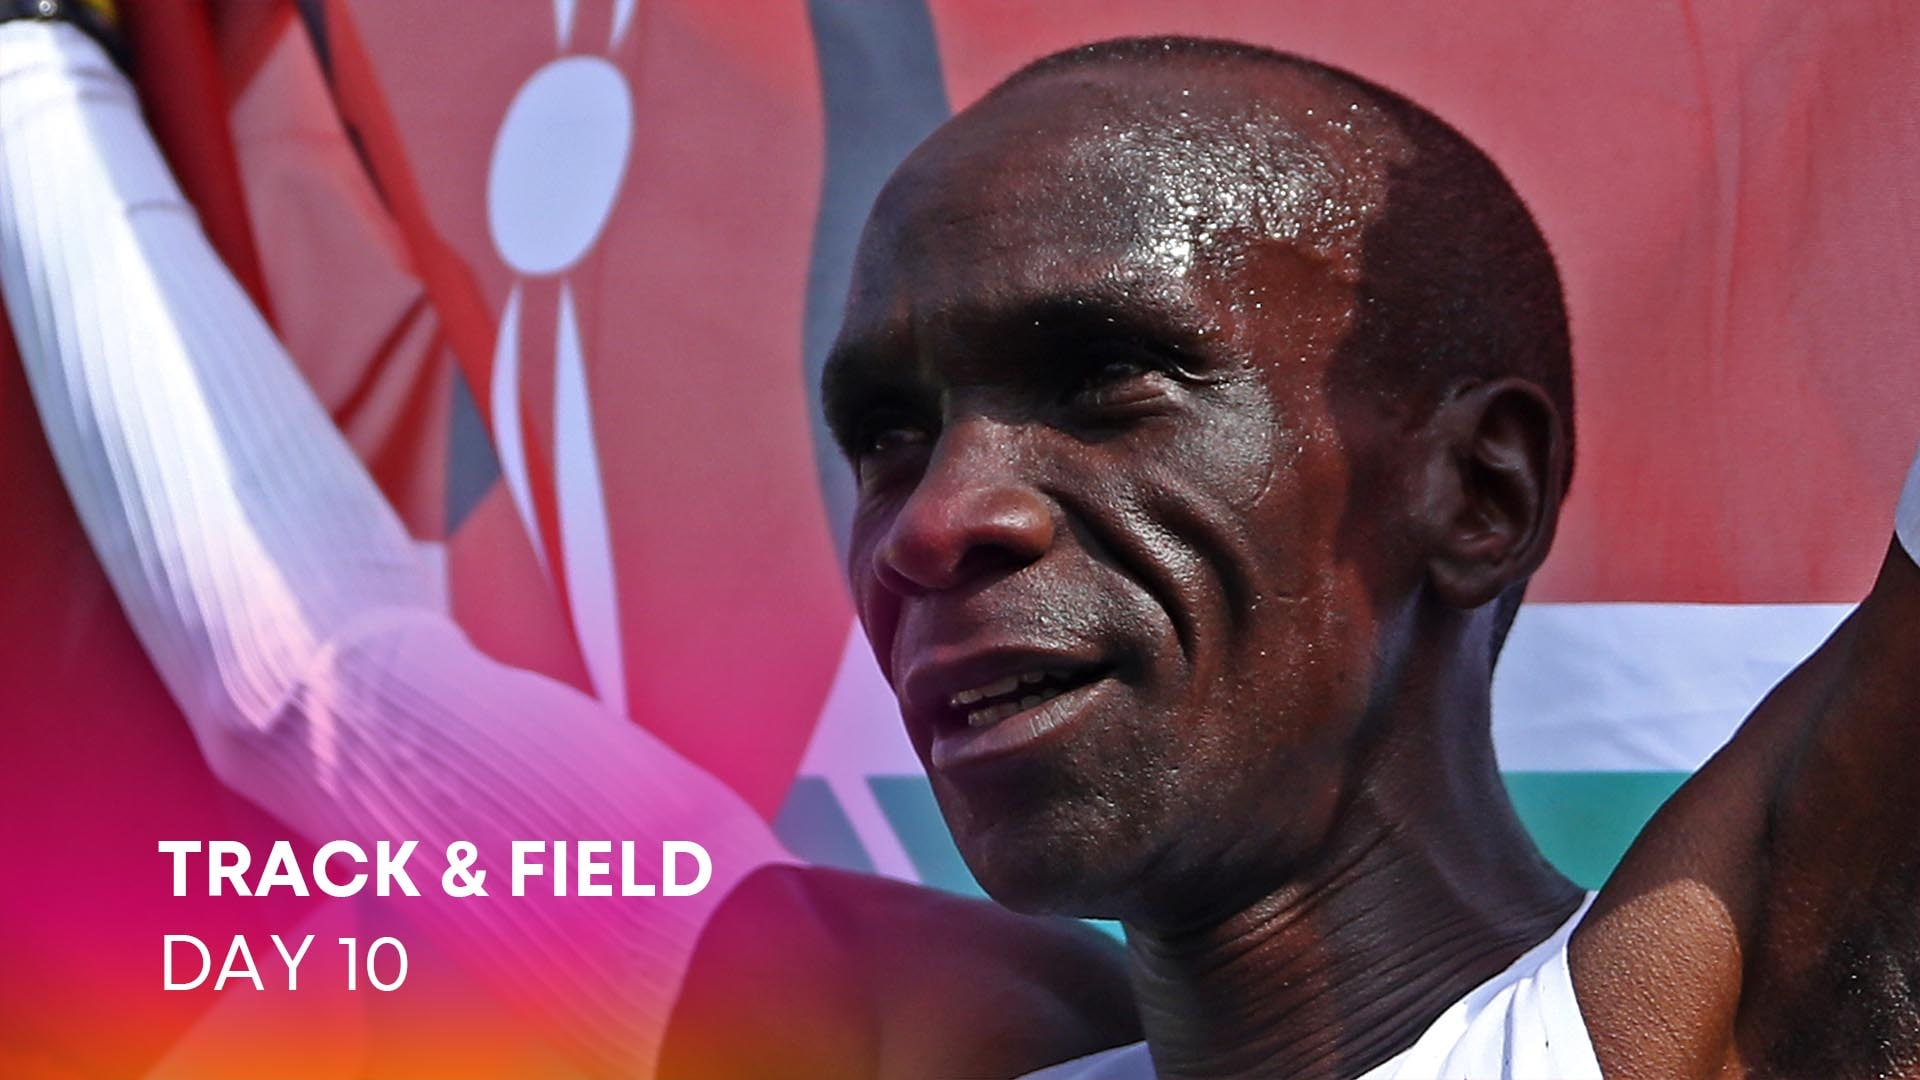 Image for Track & Field Day 10: Kipchoge chases marathon title defense